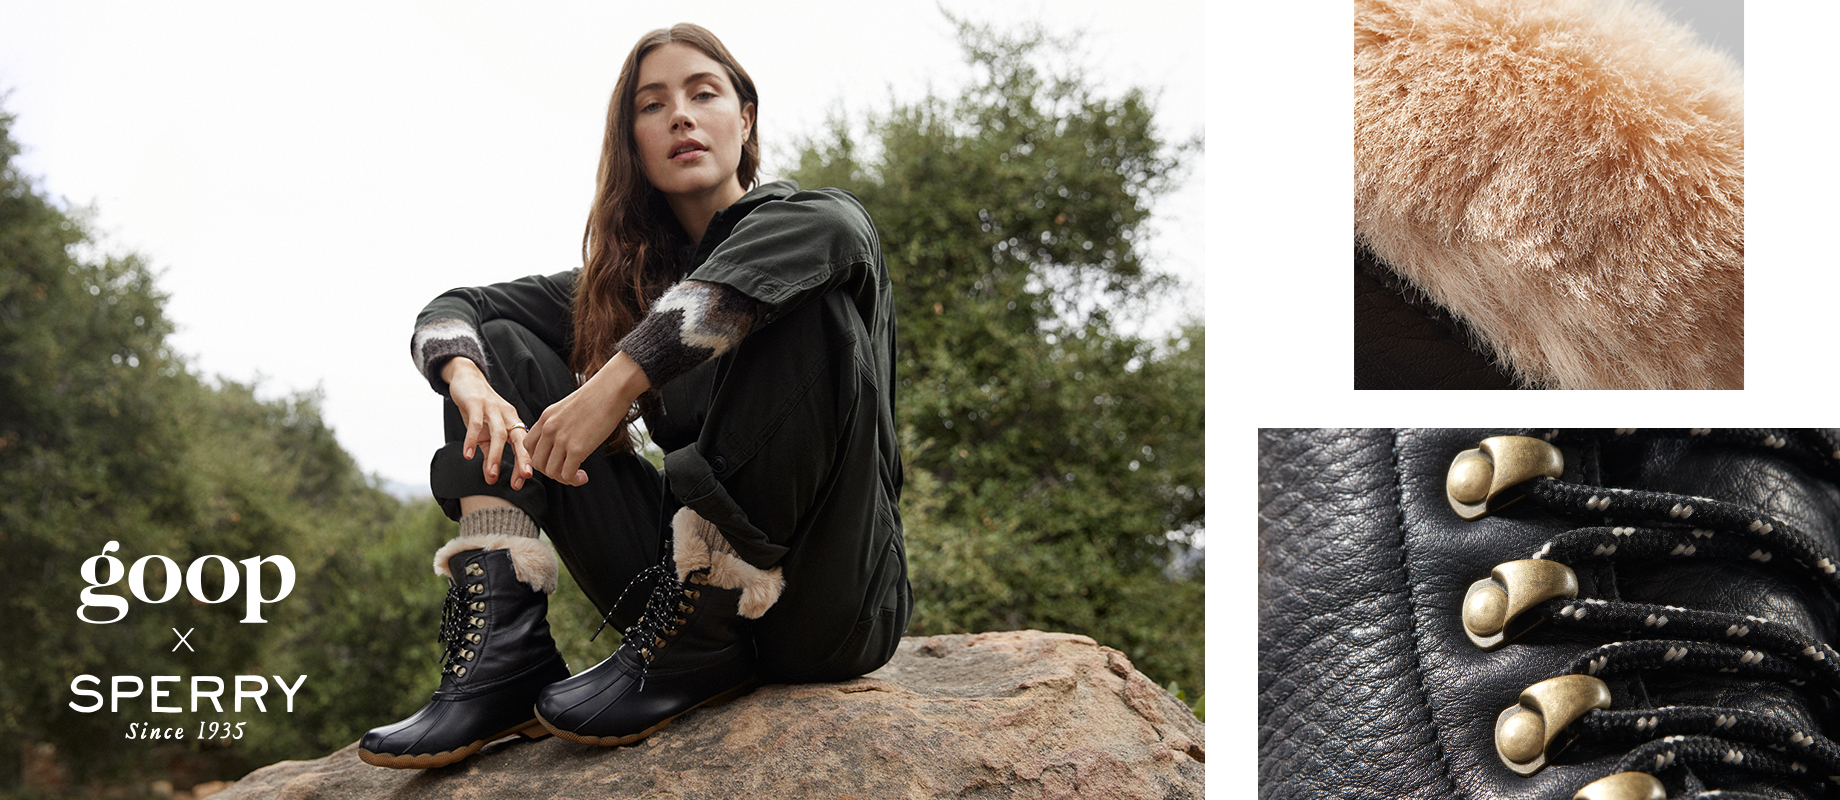 Goop & Sperry collaborative boots in black worn by a woman in a sweater on a rock in the woods.